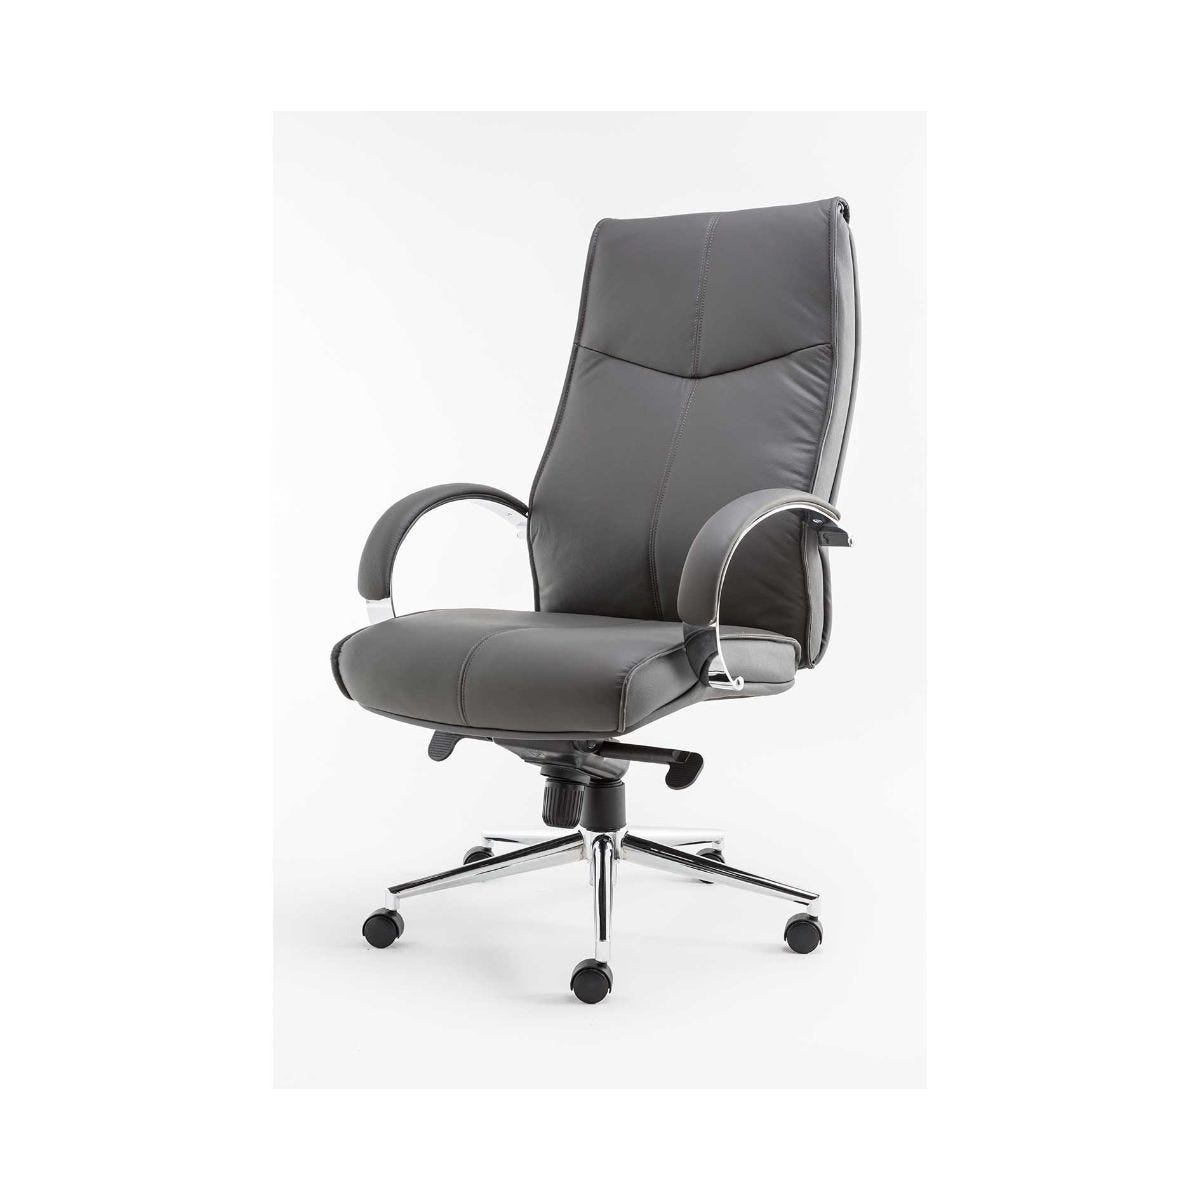 Alphason Verona Modern Leather Executive Office Chair, Grey